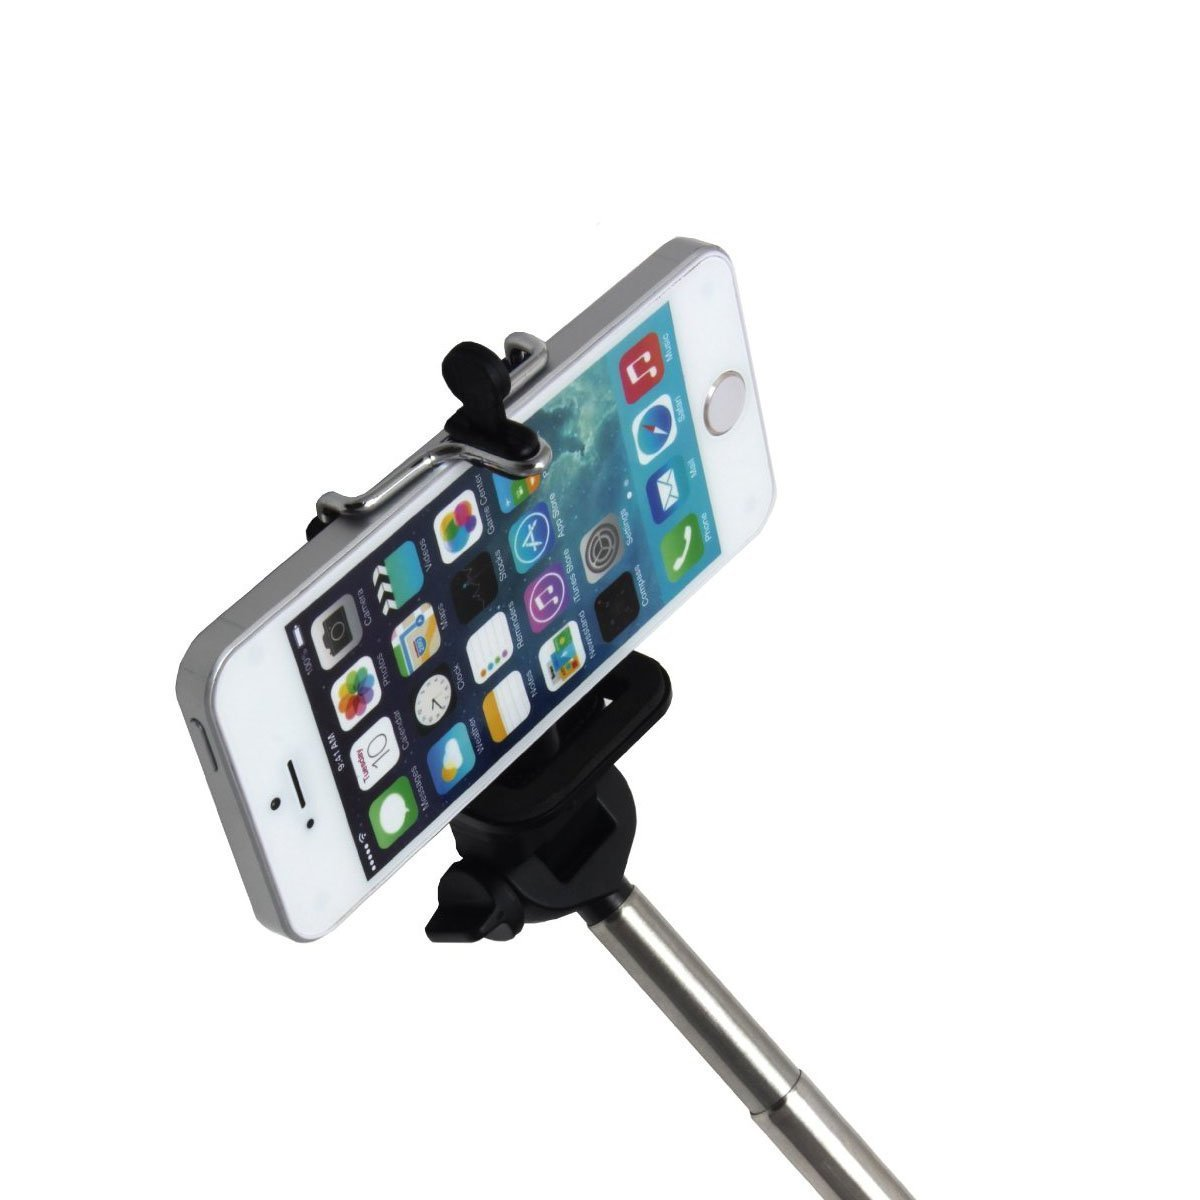 selfie stick for travel home campaign photo camera iphone 4 4s 5 5s 6 dt ebay. Black Bedroom Furniture Sets. Home Design Ideas